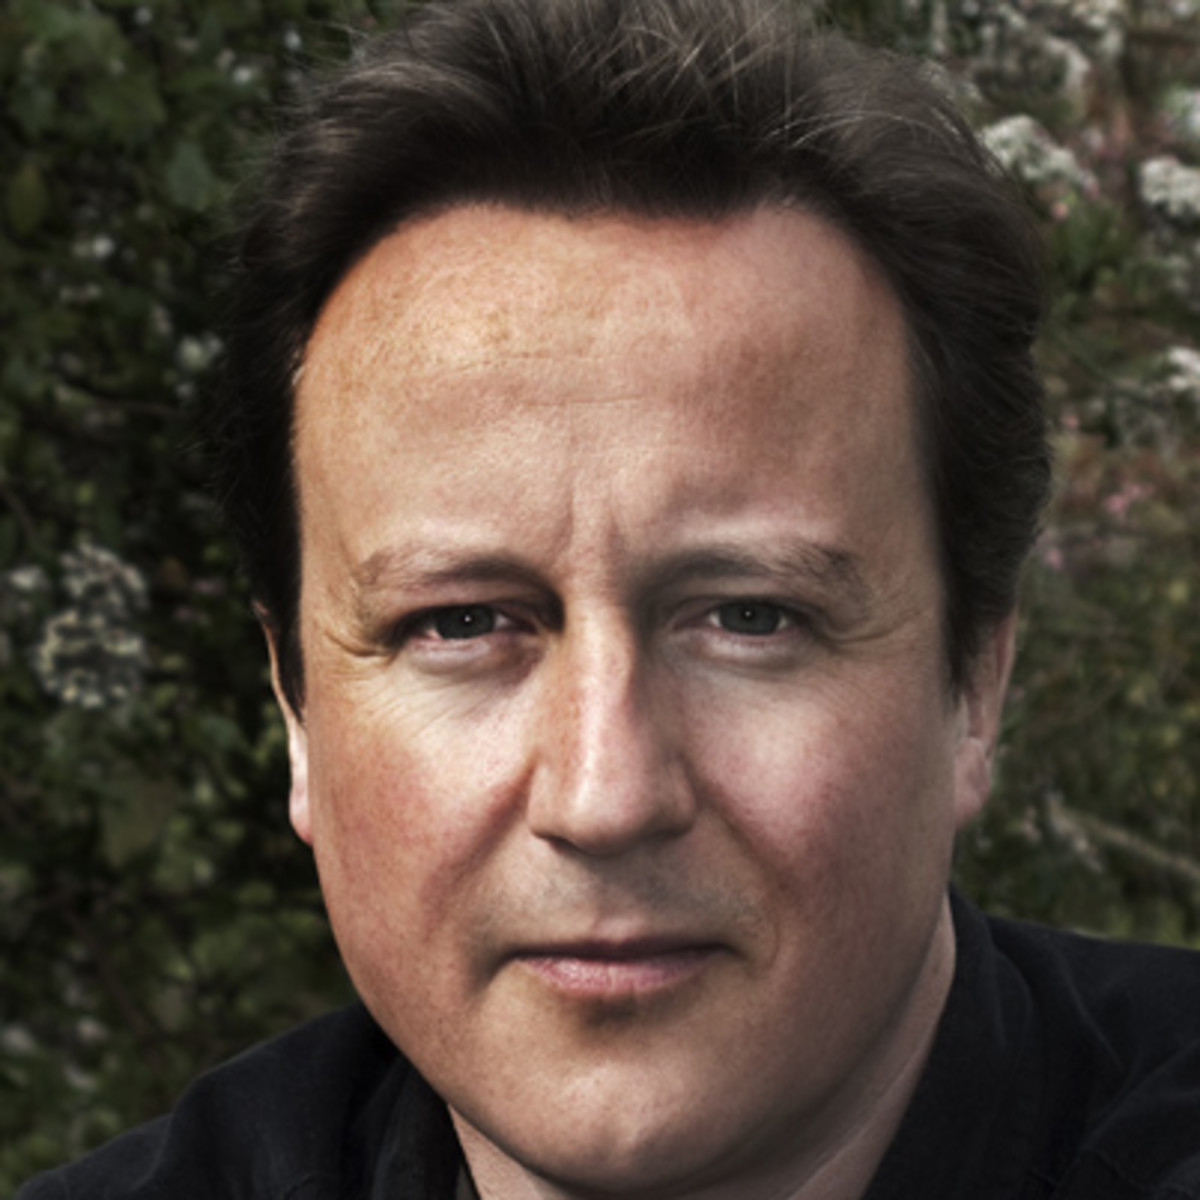 David Cameron - British Prime Minister: Biography, Family, Political Career 23